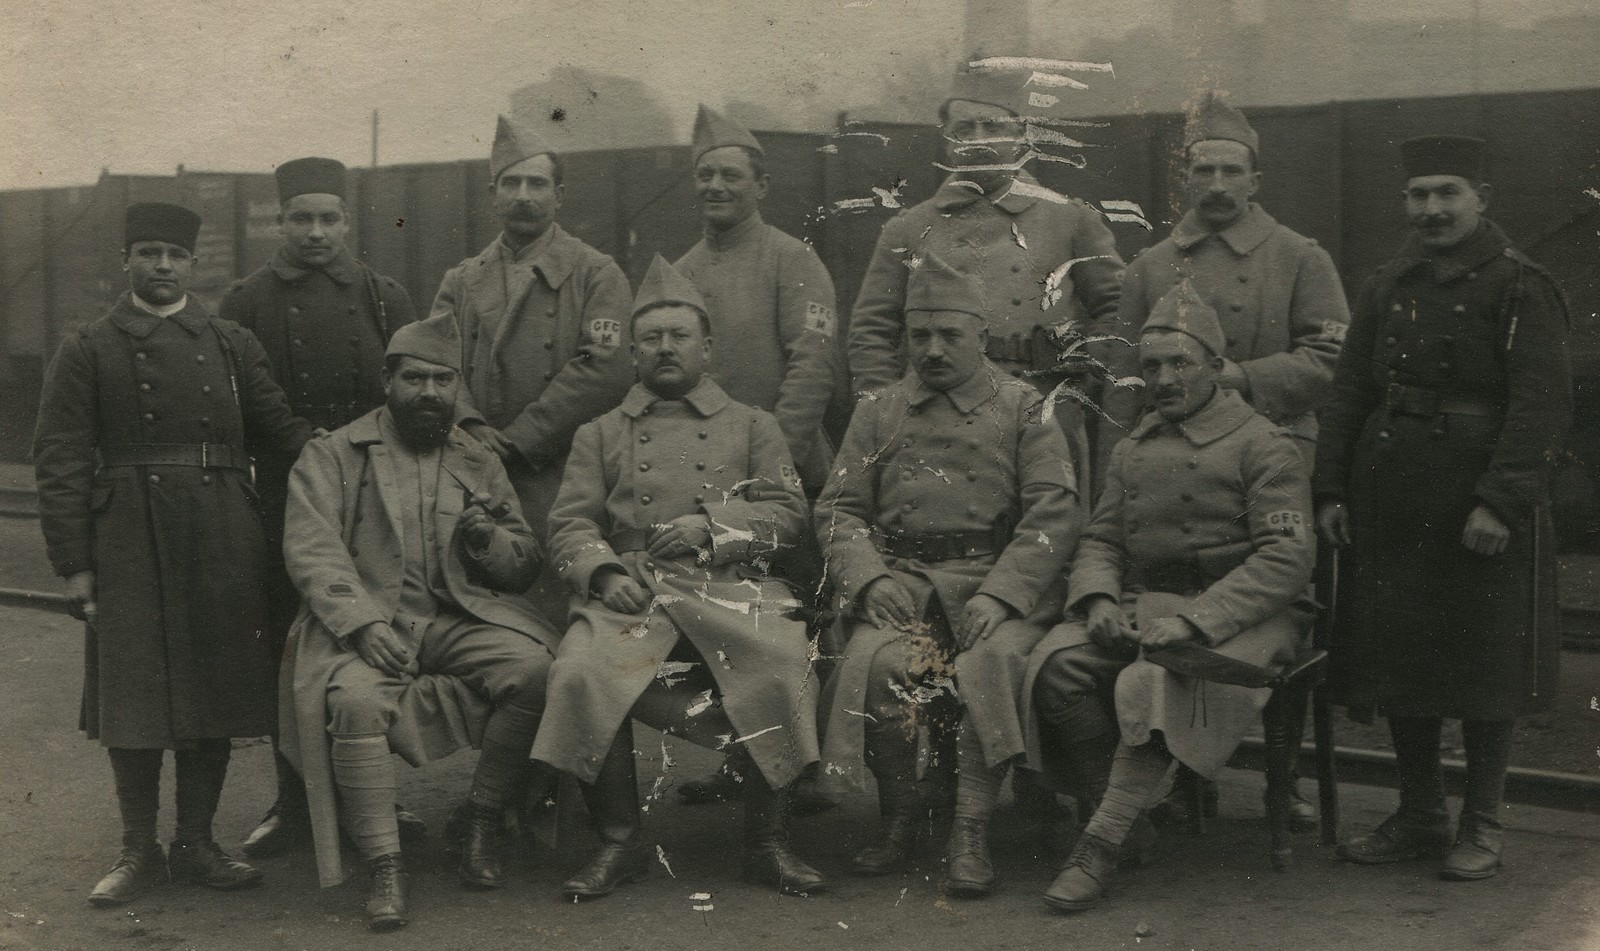 cpa photo zouaves et soldats en allemagne 1923 ebay. Black Bedroom Furniture Sets. Home Design Ideas